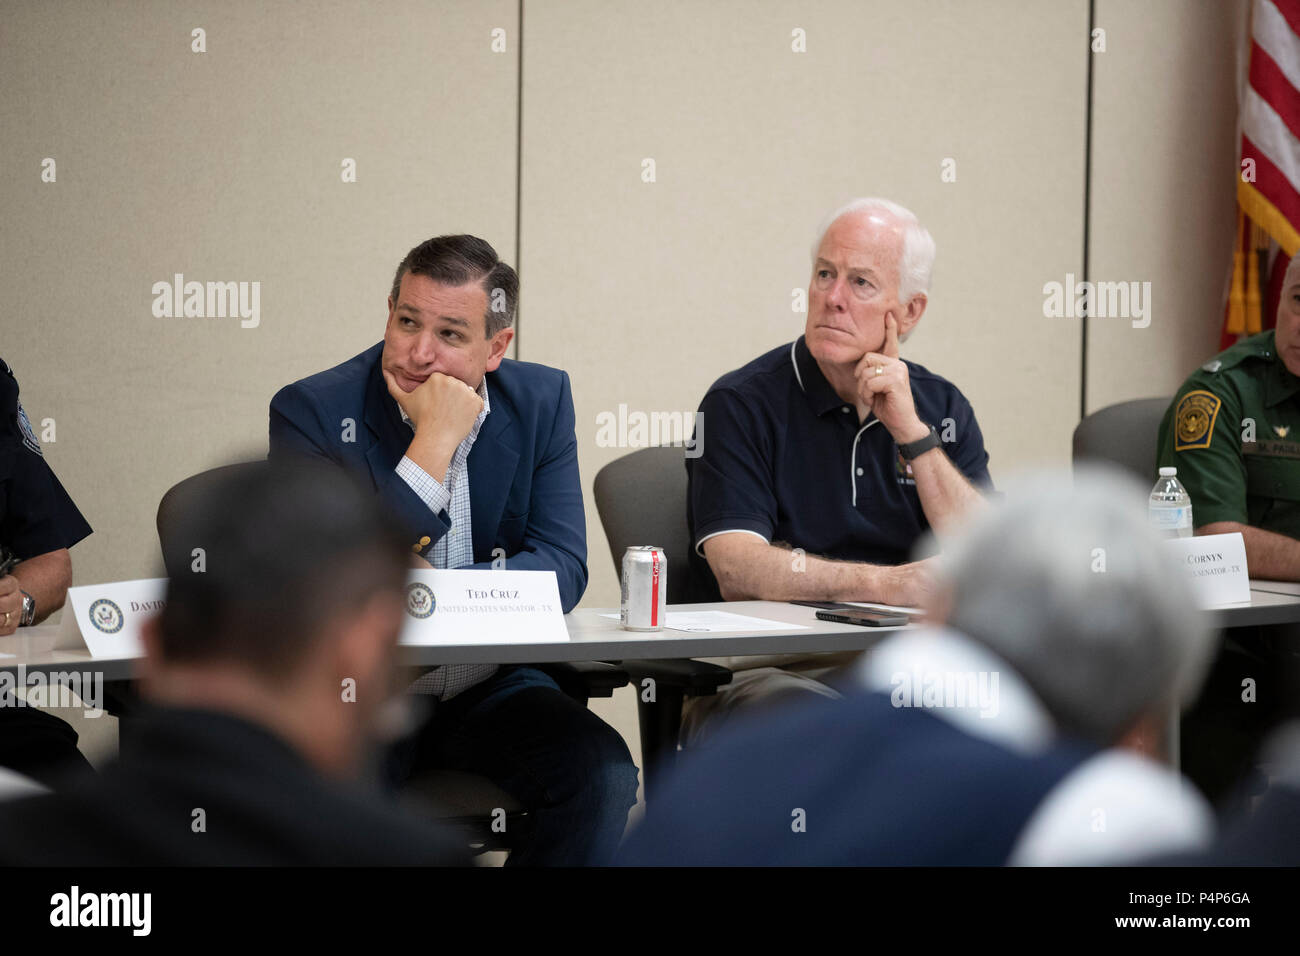 U.S. Senators Ted Cruz, left, and John Cornyn listen as federal and Texas officials and stakeholders meet in a round-table discussion of the immigration crisis hitting the Texas-Mexico border. Confusion and public outrage reigned regarding the Trump administration's policy of separating undocumented immigrant parents from their children after crossing into the U.S. from Mexico. - Stock Image